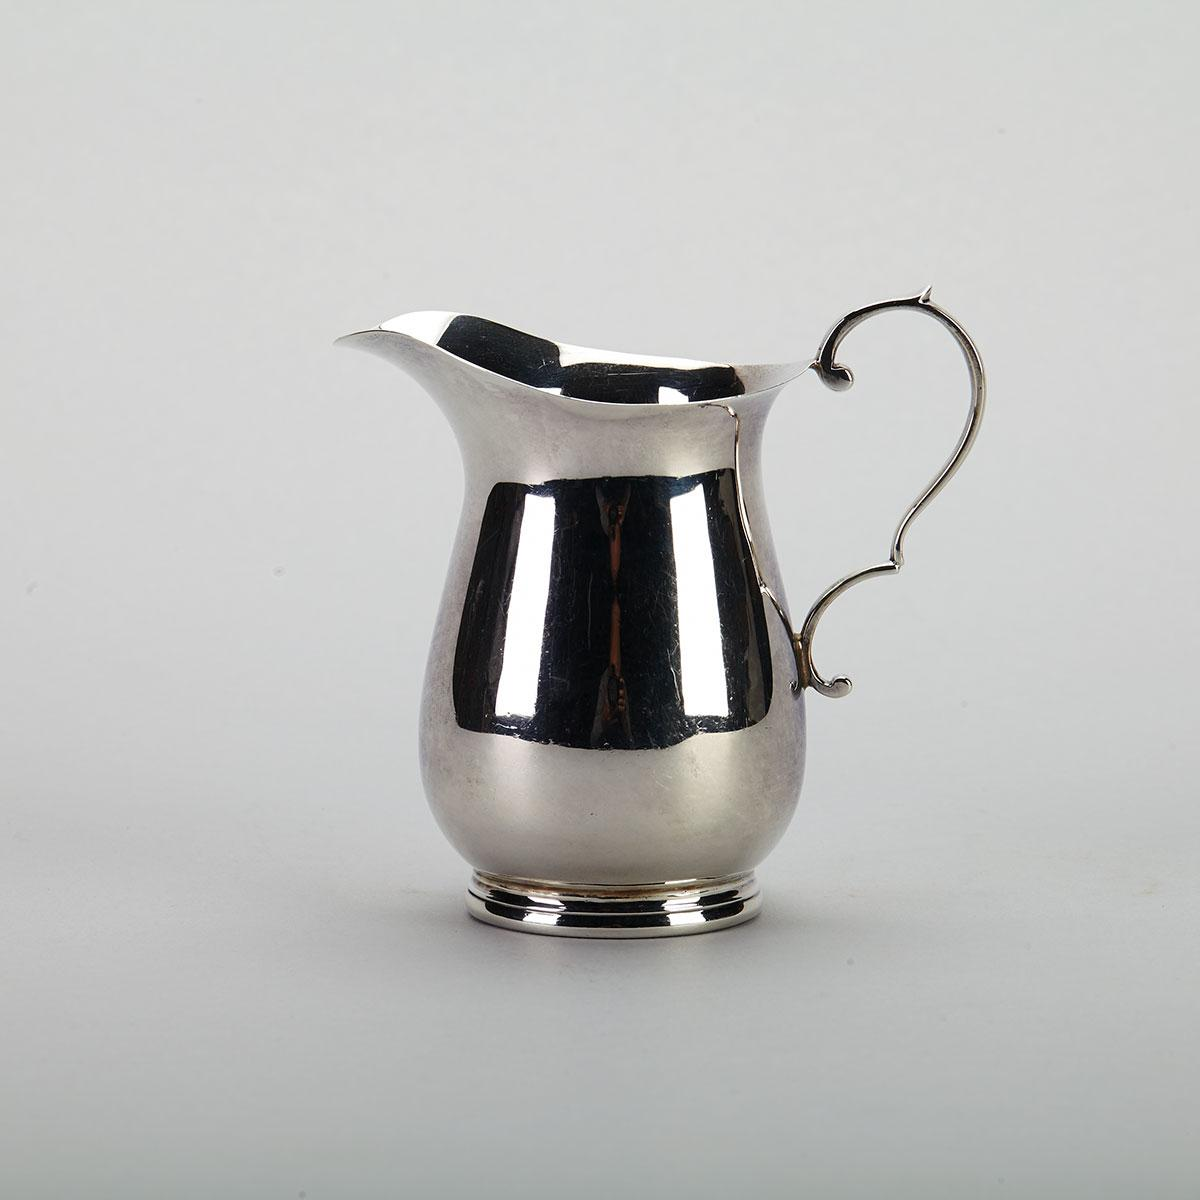 English Silver Cream Jug, William Hutton & Sons, Sheffield, 1938